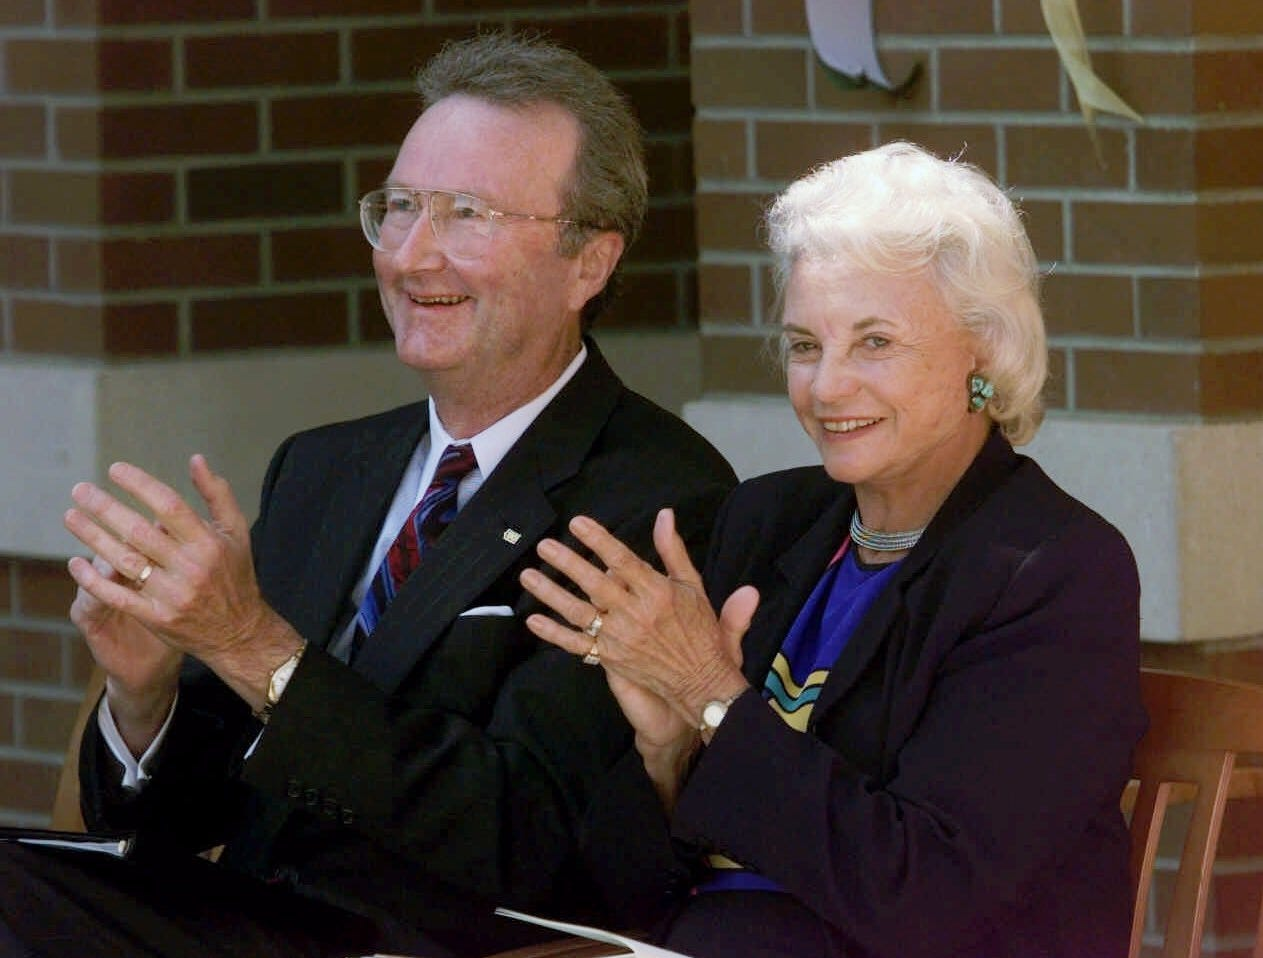 U.S. Supreme Court Justice Sandra Day O'Connor laughs with University of Oregon President Dave Frohnmayer in Eugene, Ore., Wednesday, Sept. 15, 1999, during the dedication ceremony for the new William W. Knight Law School Building.